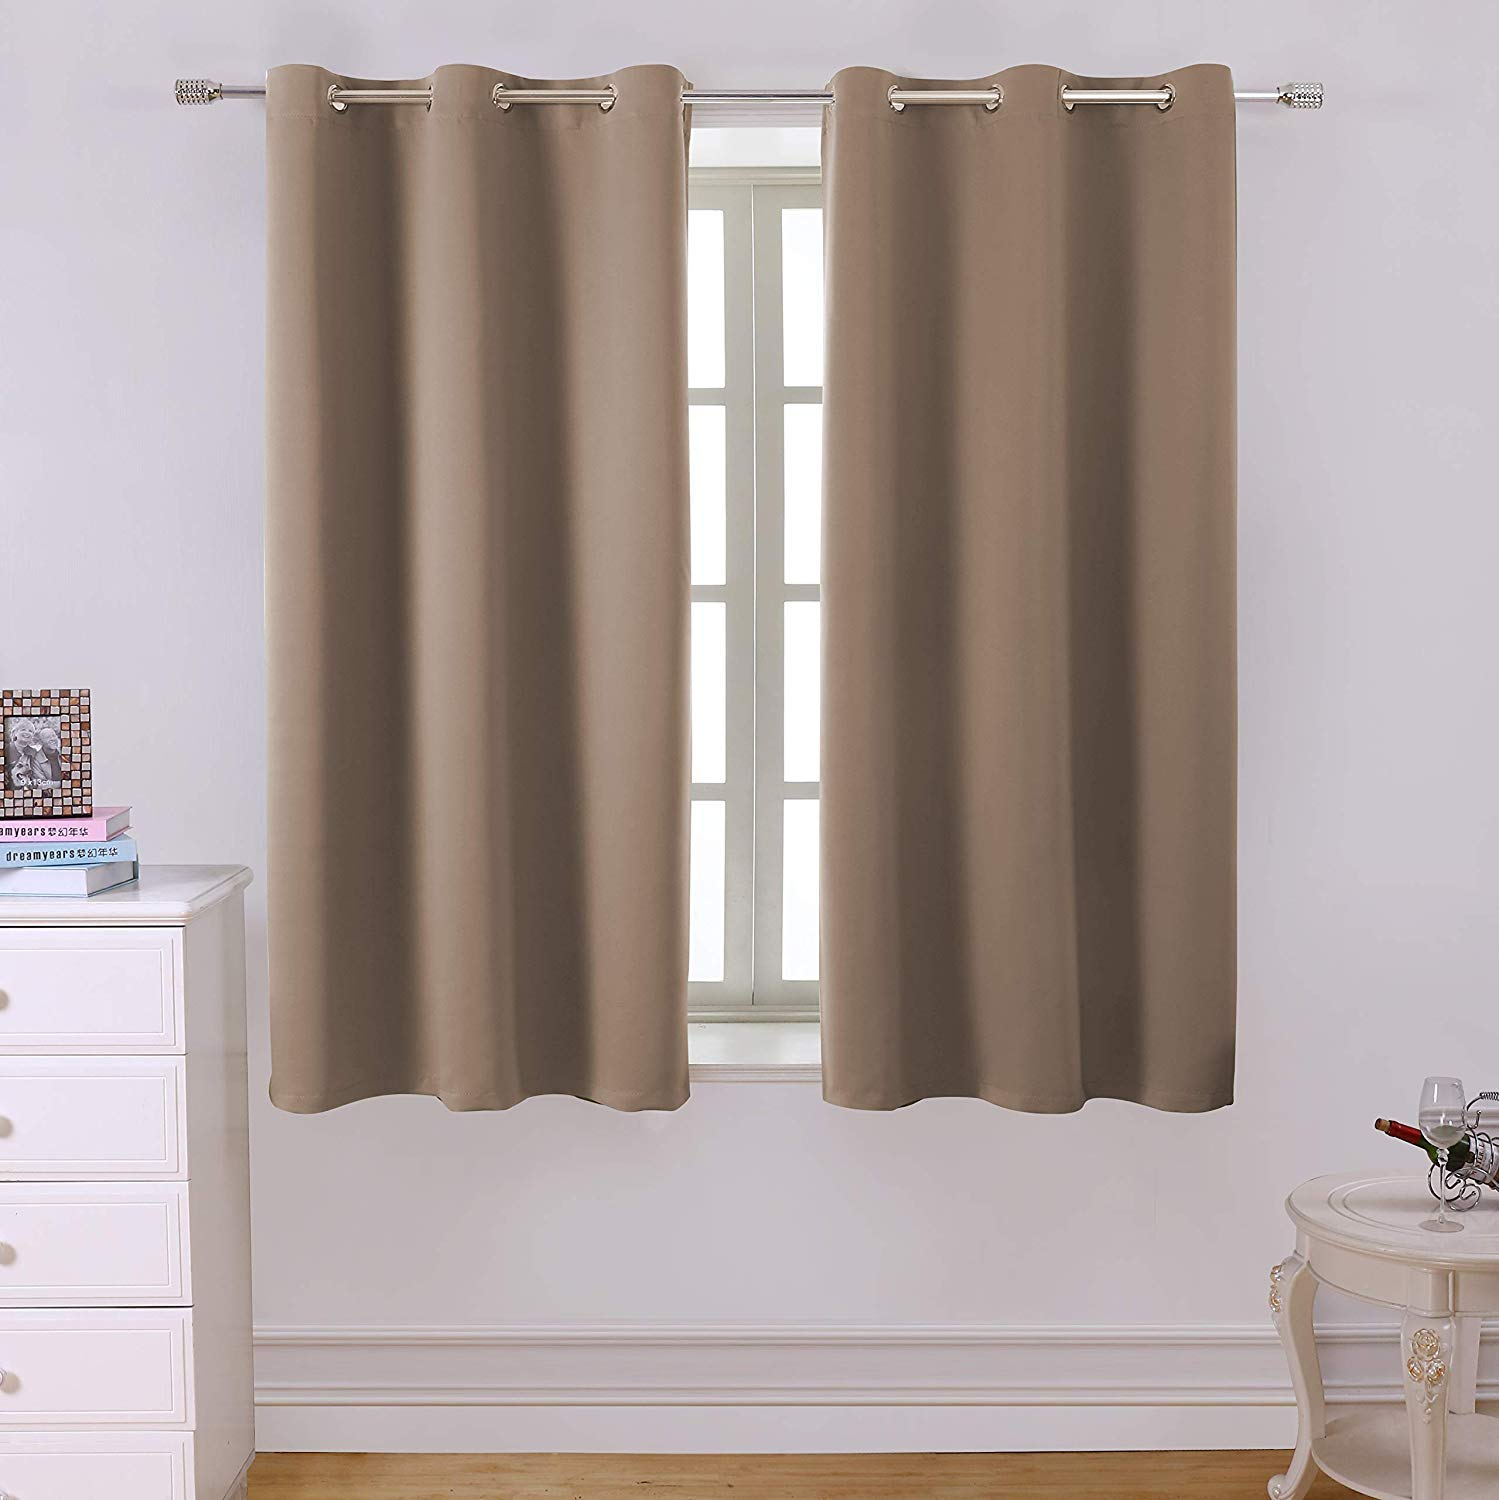 Blackout Curtains Room Darkening Thermal Insulated With Grommet Window Curtain For Bedroom 2 Panels Regarding All Seasons Blackout Window Curtains (View 11 of 20)